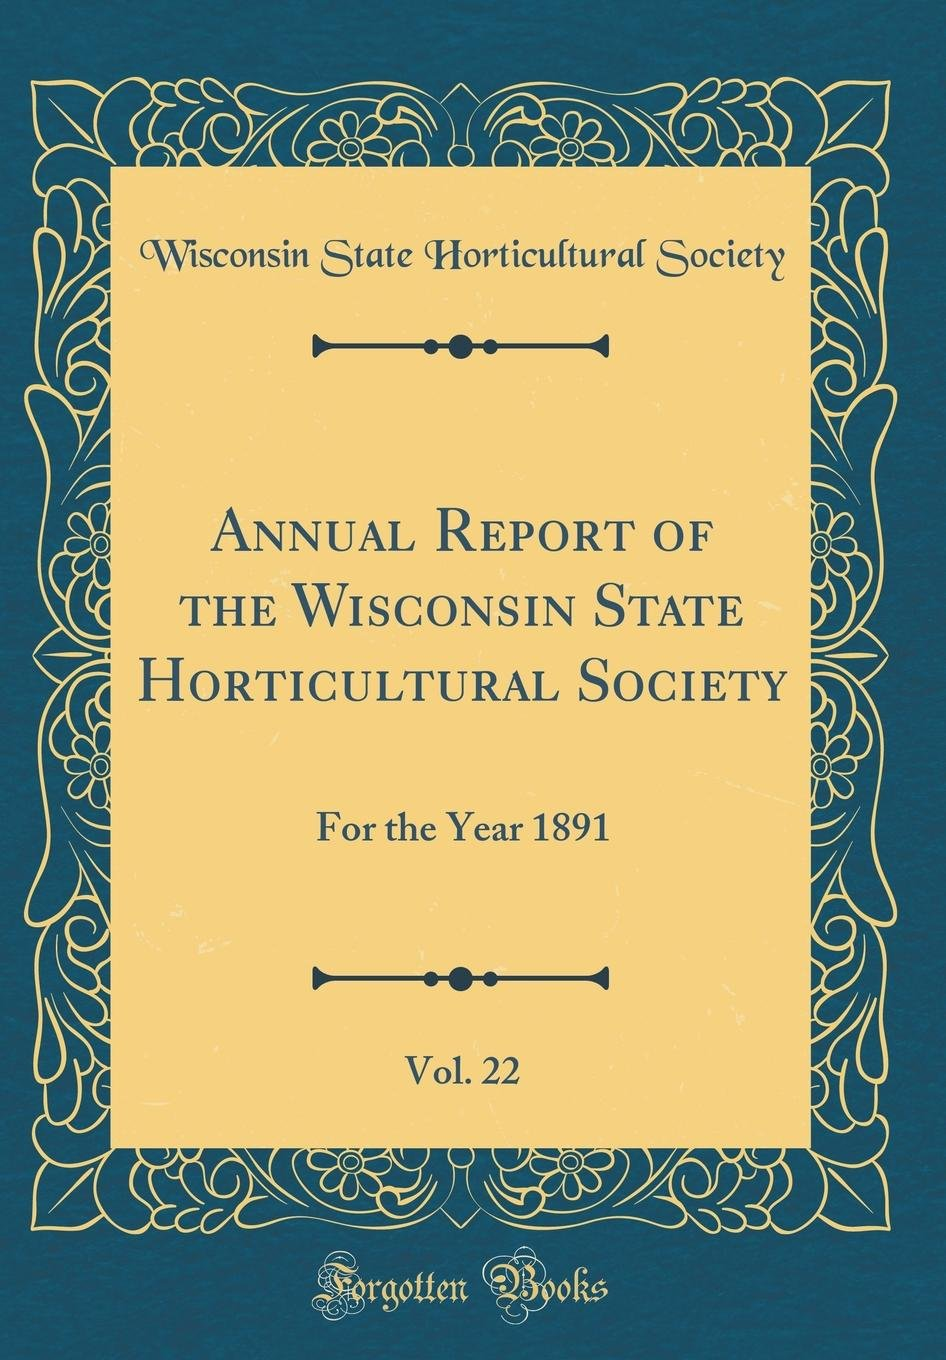 Annual Report of the Wisconsin State Horticultural Society, Vol. 22: For the Year 1891 (Classic Reprint) ebook